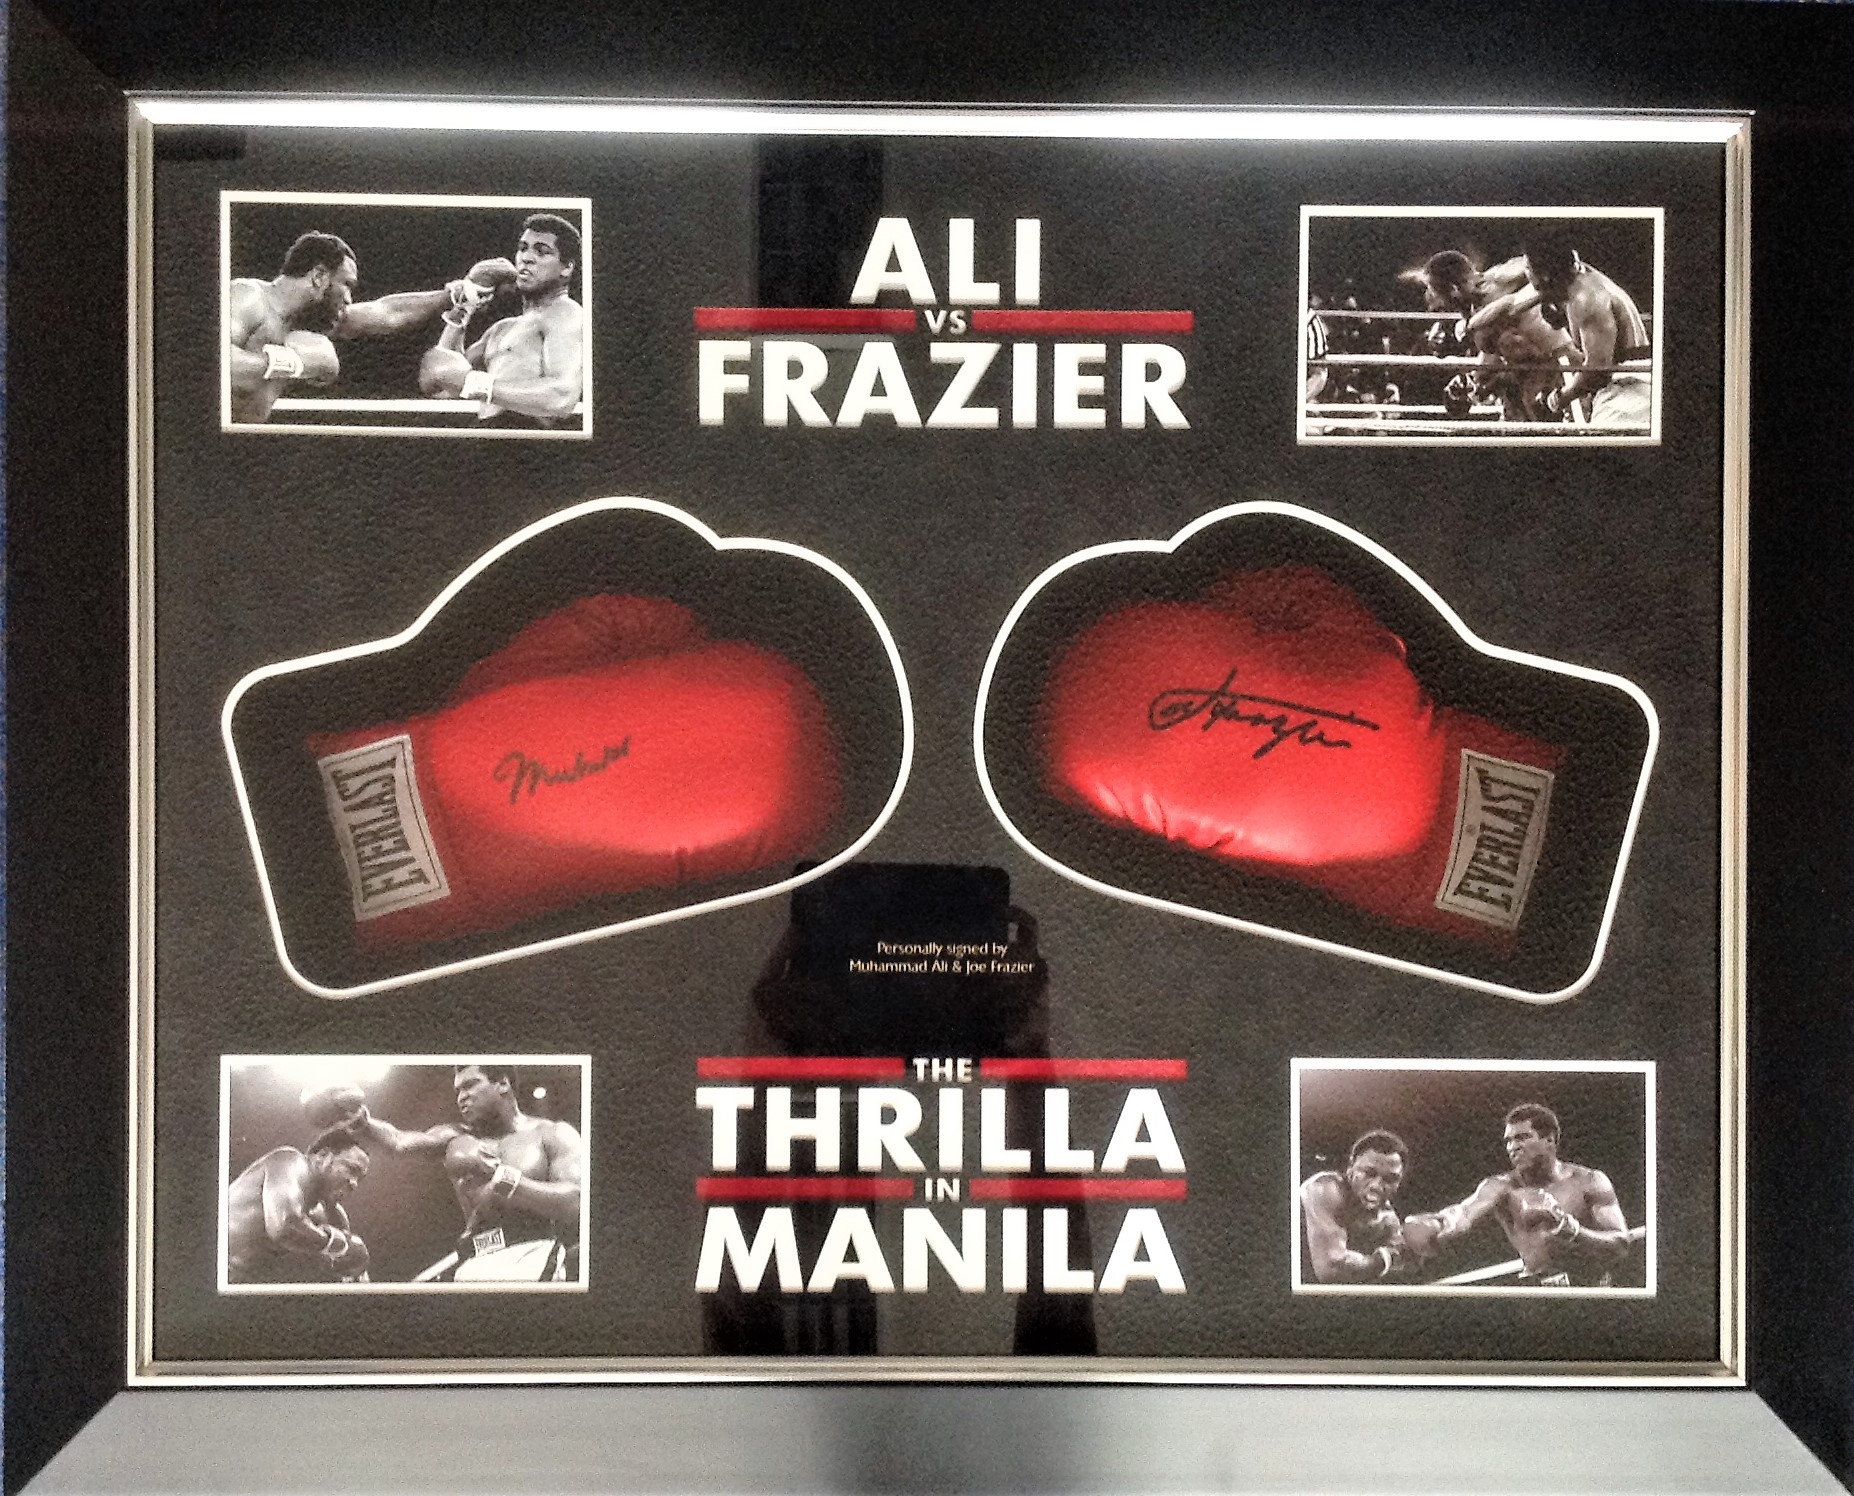 Lot 2 - Boxing Thrilla in Manila Muhammad Ali and Joe Frazier 41x35 mounted and framed pair of Everlast